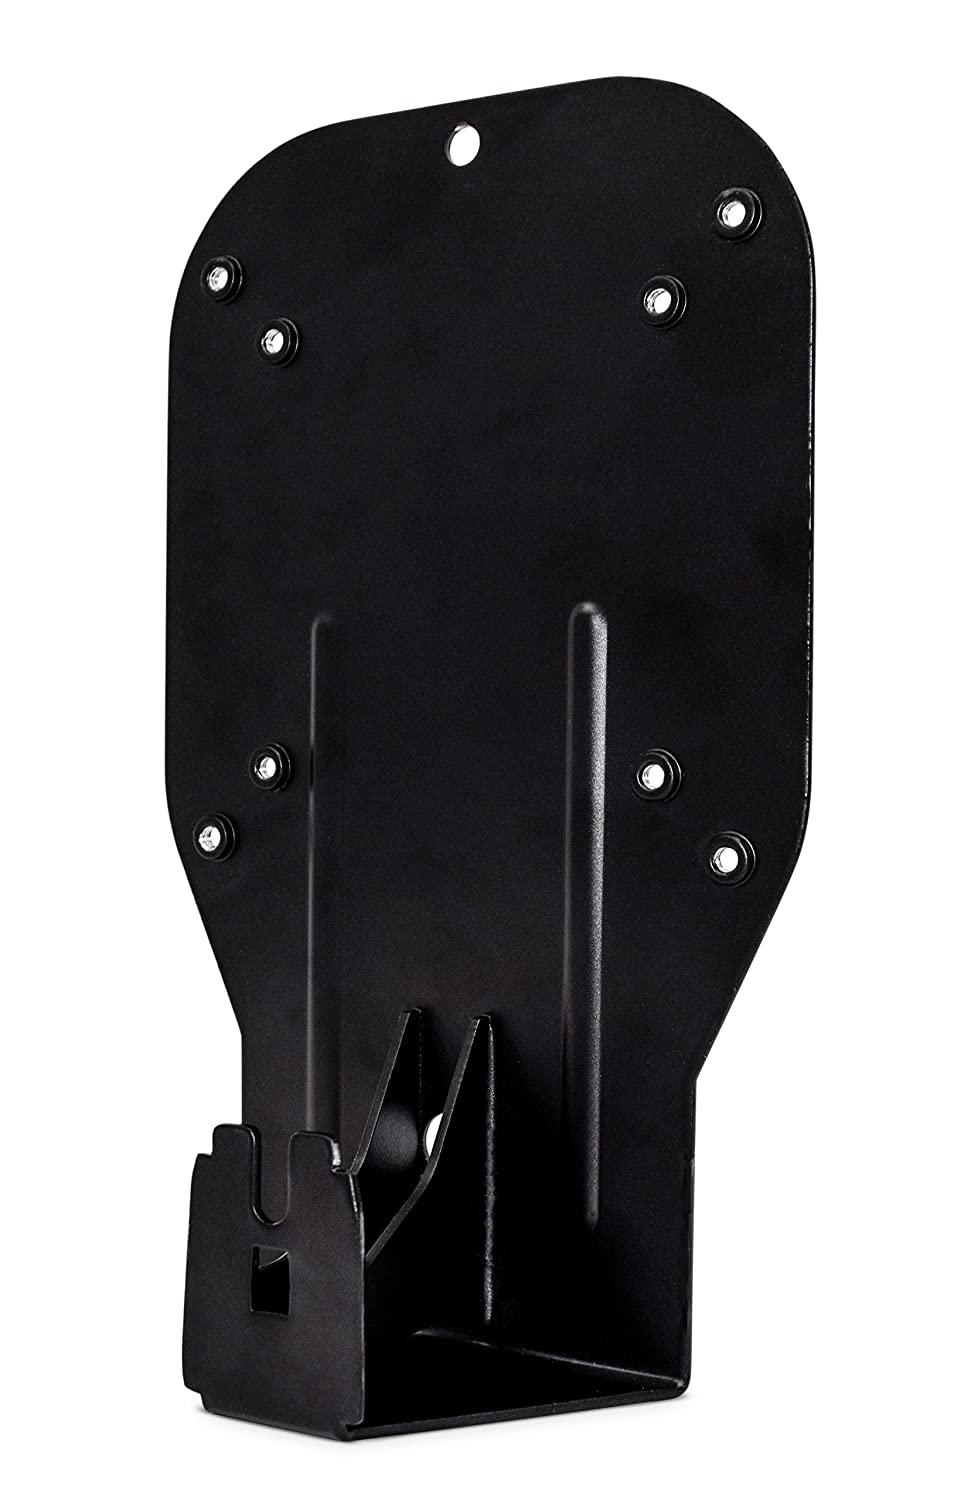 S2318 S2718 Monitors - by HumanCentric Patent Pending VESA Mount Adapter for Dell S2218 S2418